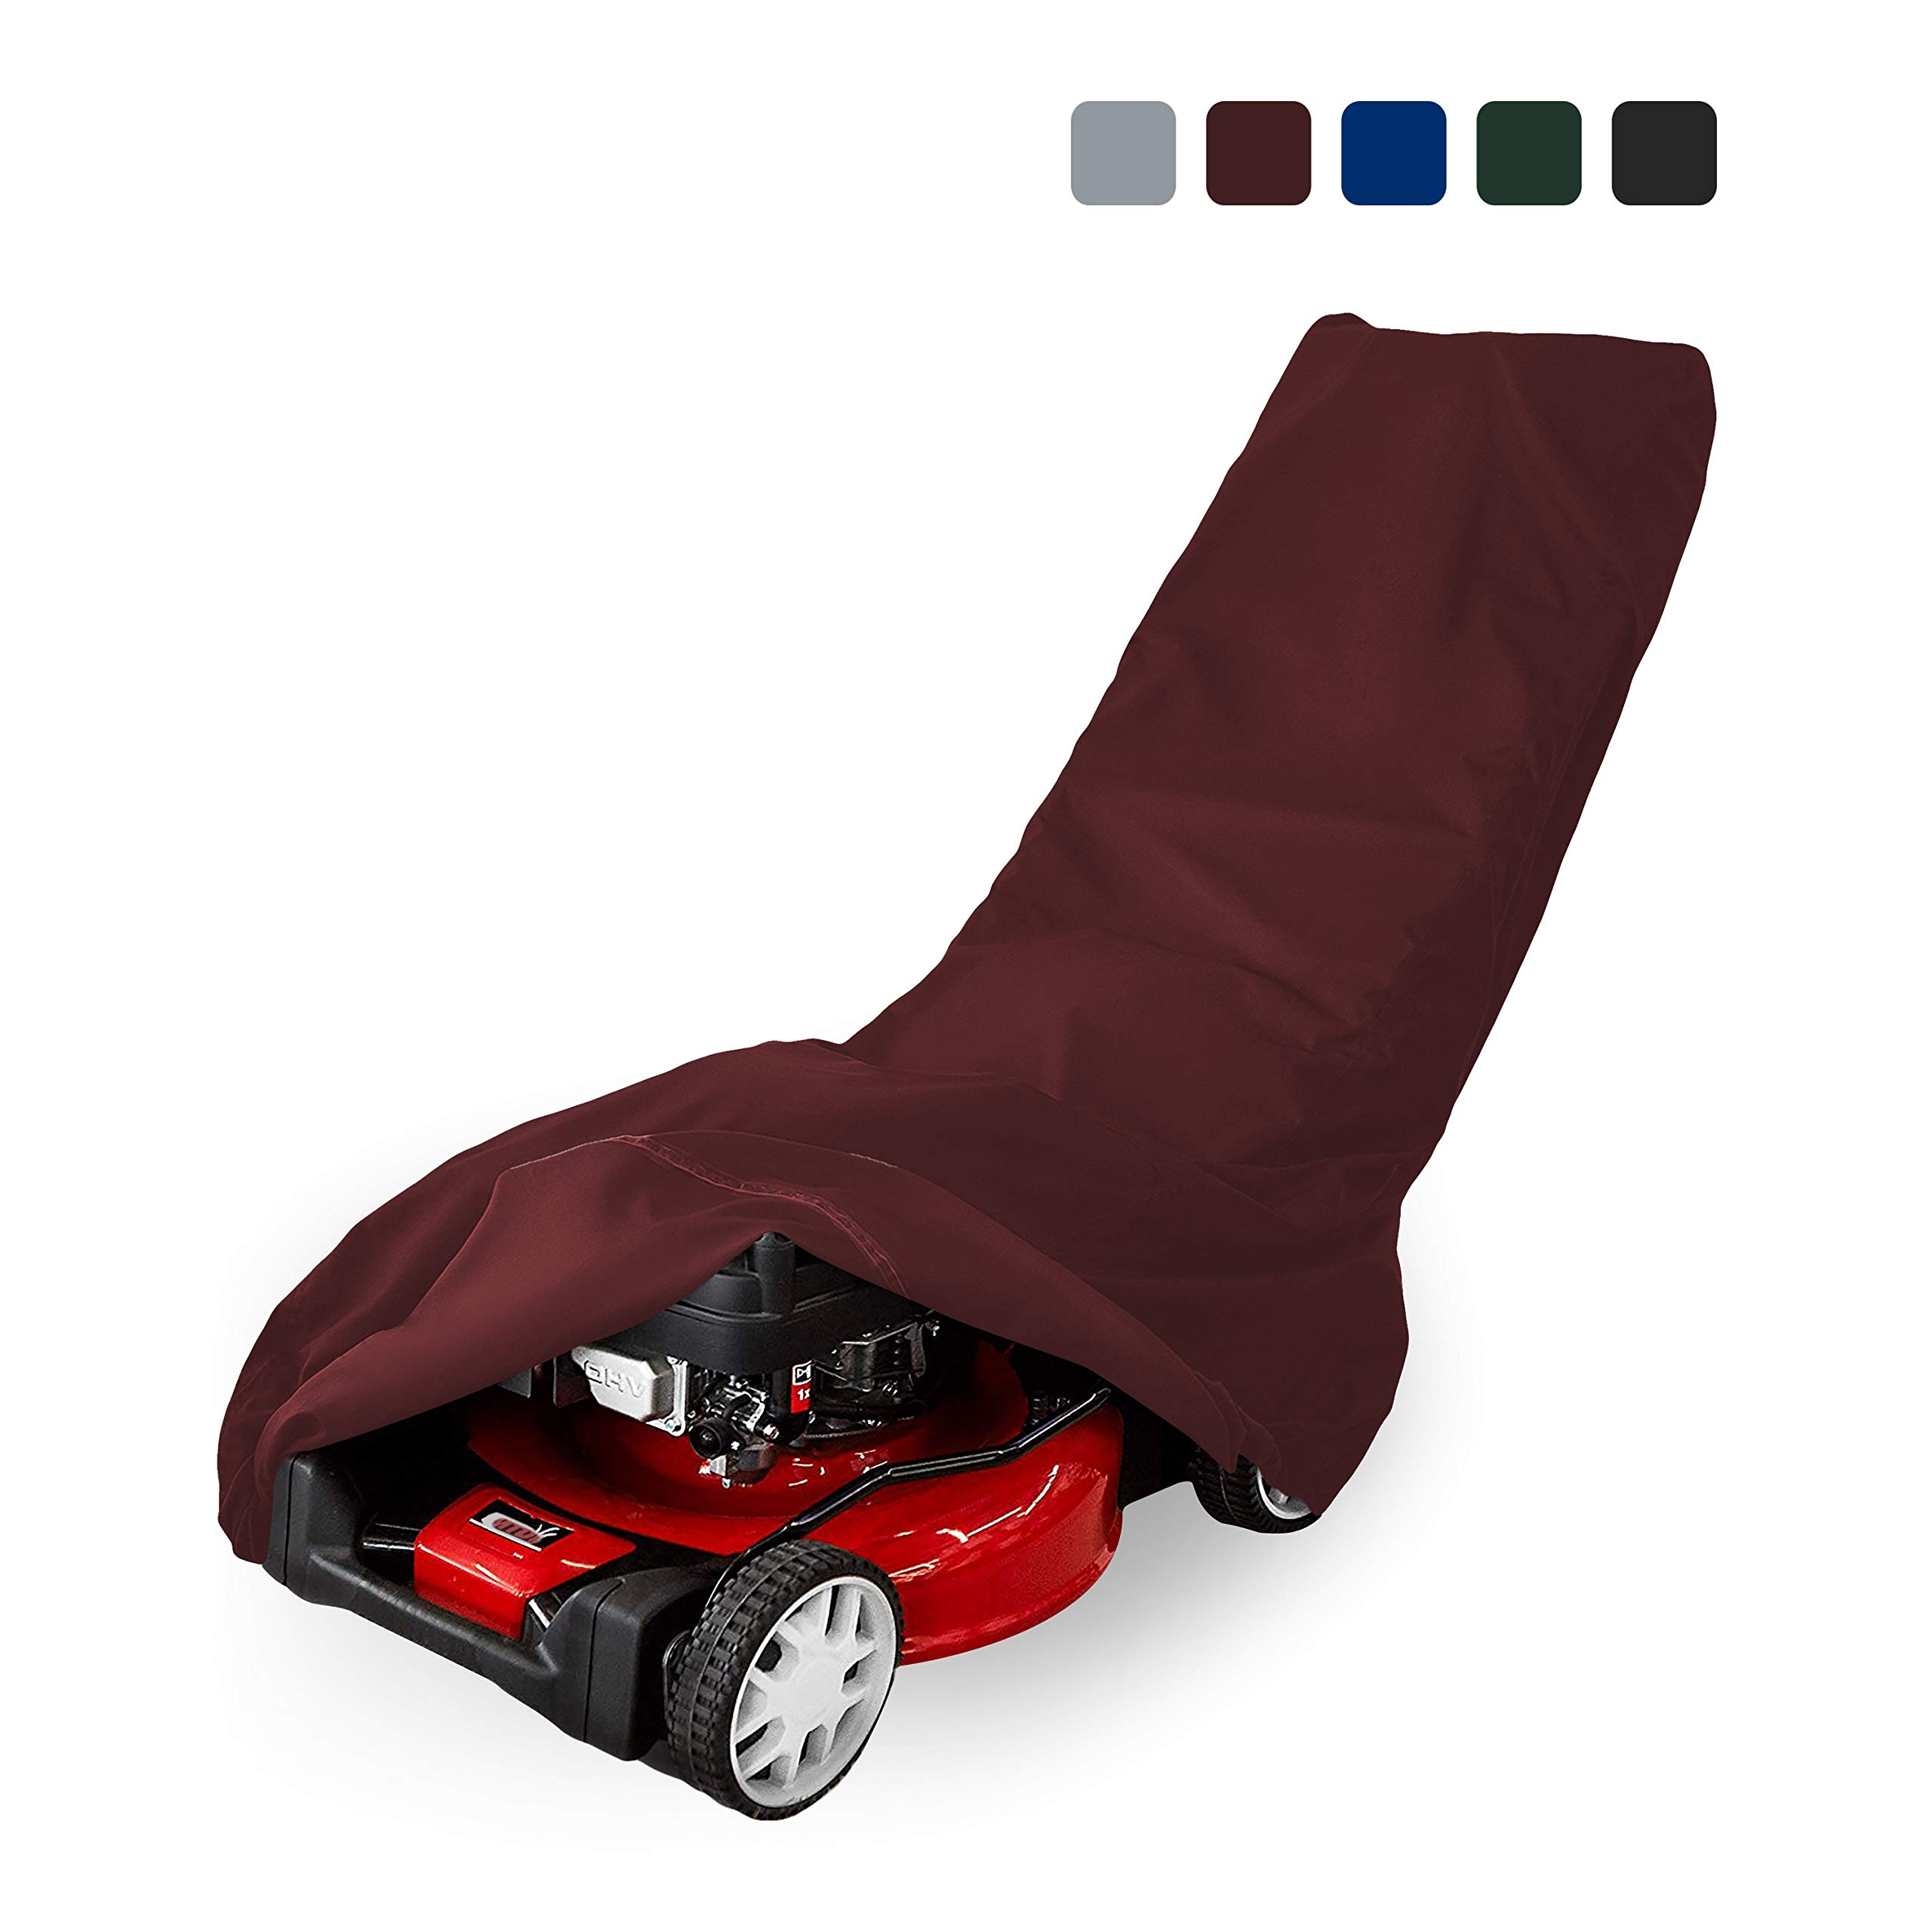 Lawn Mower Cover 18 Oz Waterproof - Customize Cover with Any Size - 100% UV & Weather Resistant Grass Mower Cover with Air Pocket and Drawstring with Snug Fit (57'' W x 39'' W x 44''H, Burgundy)